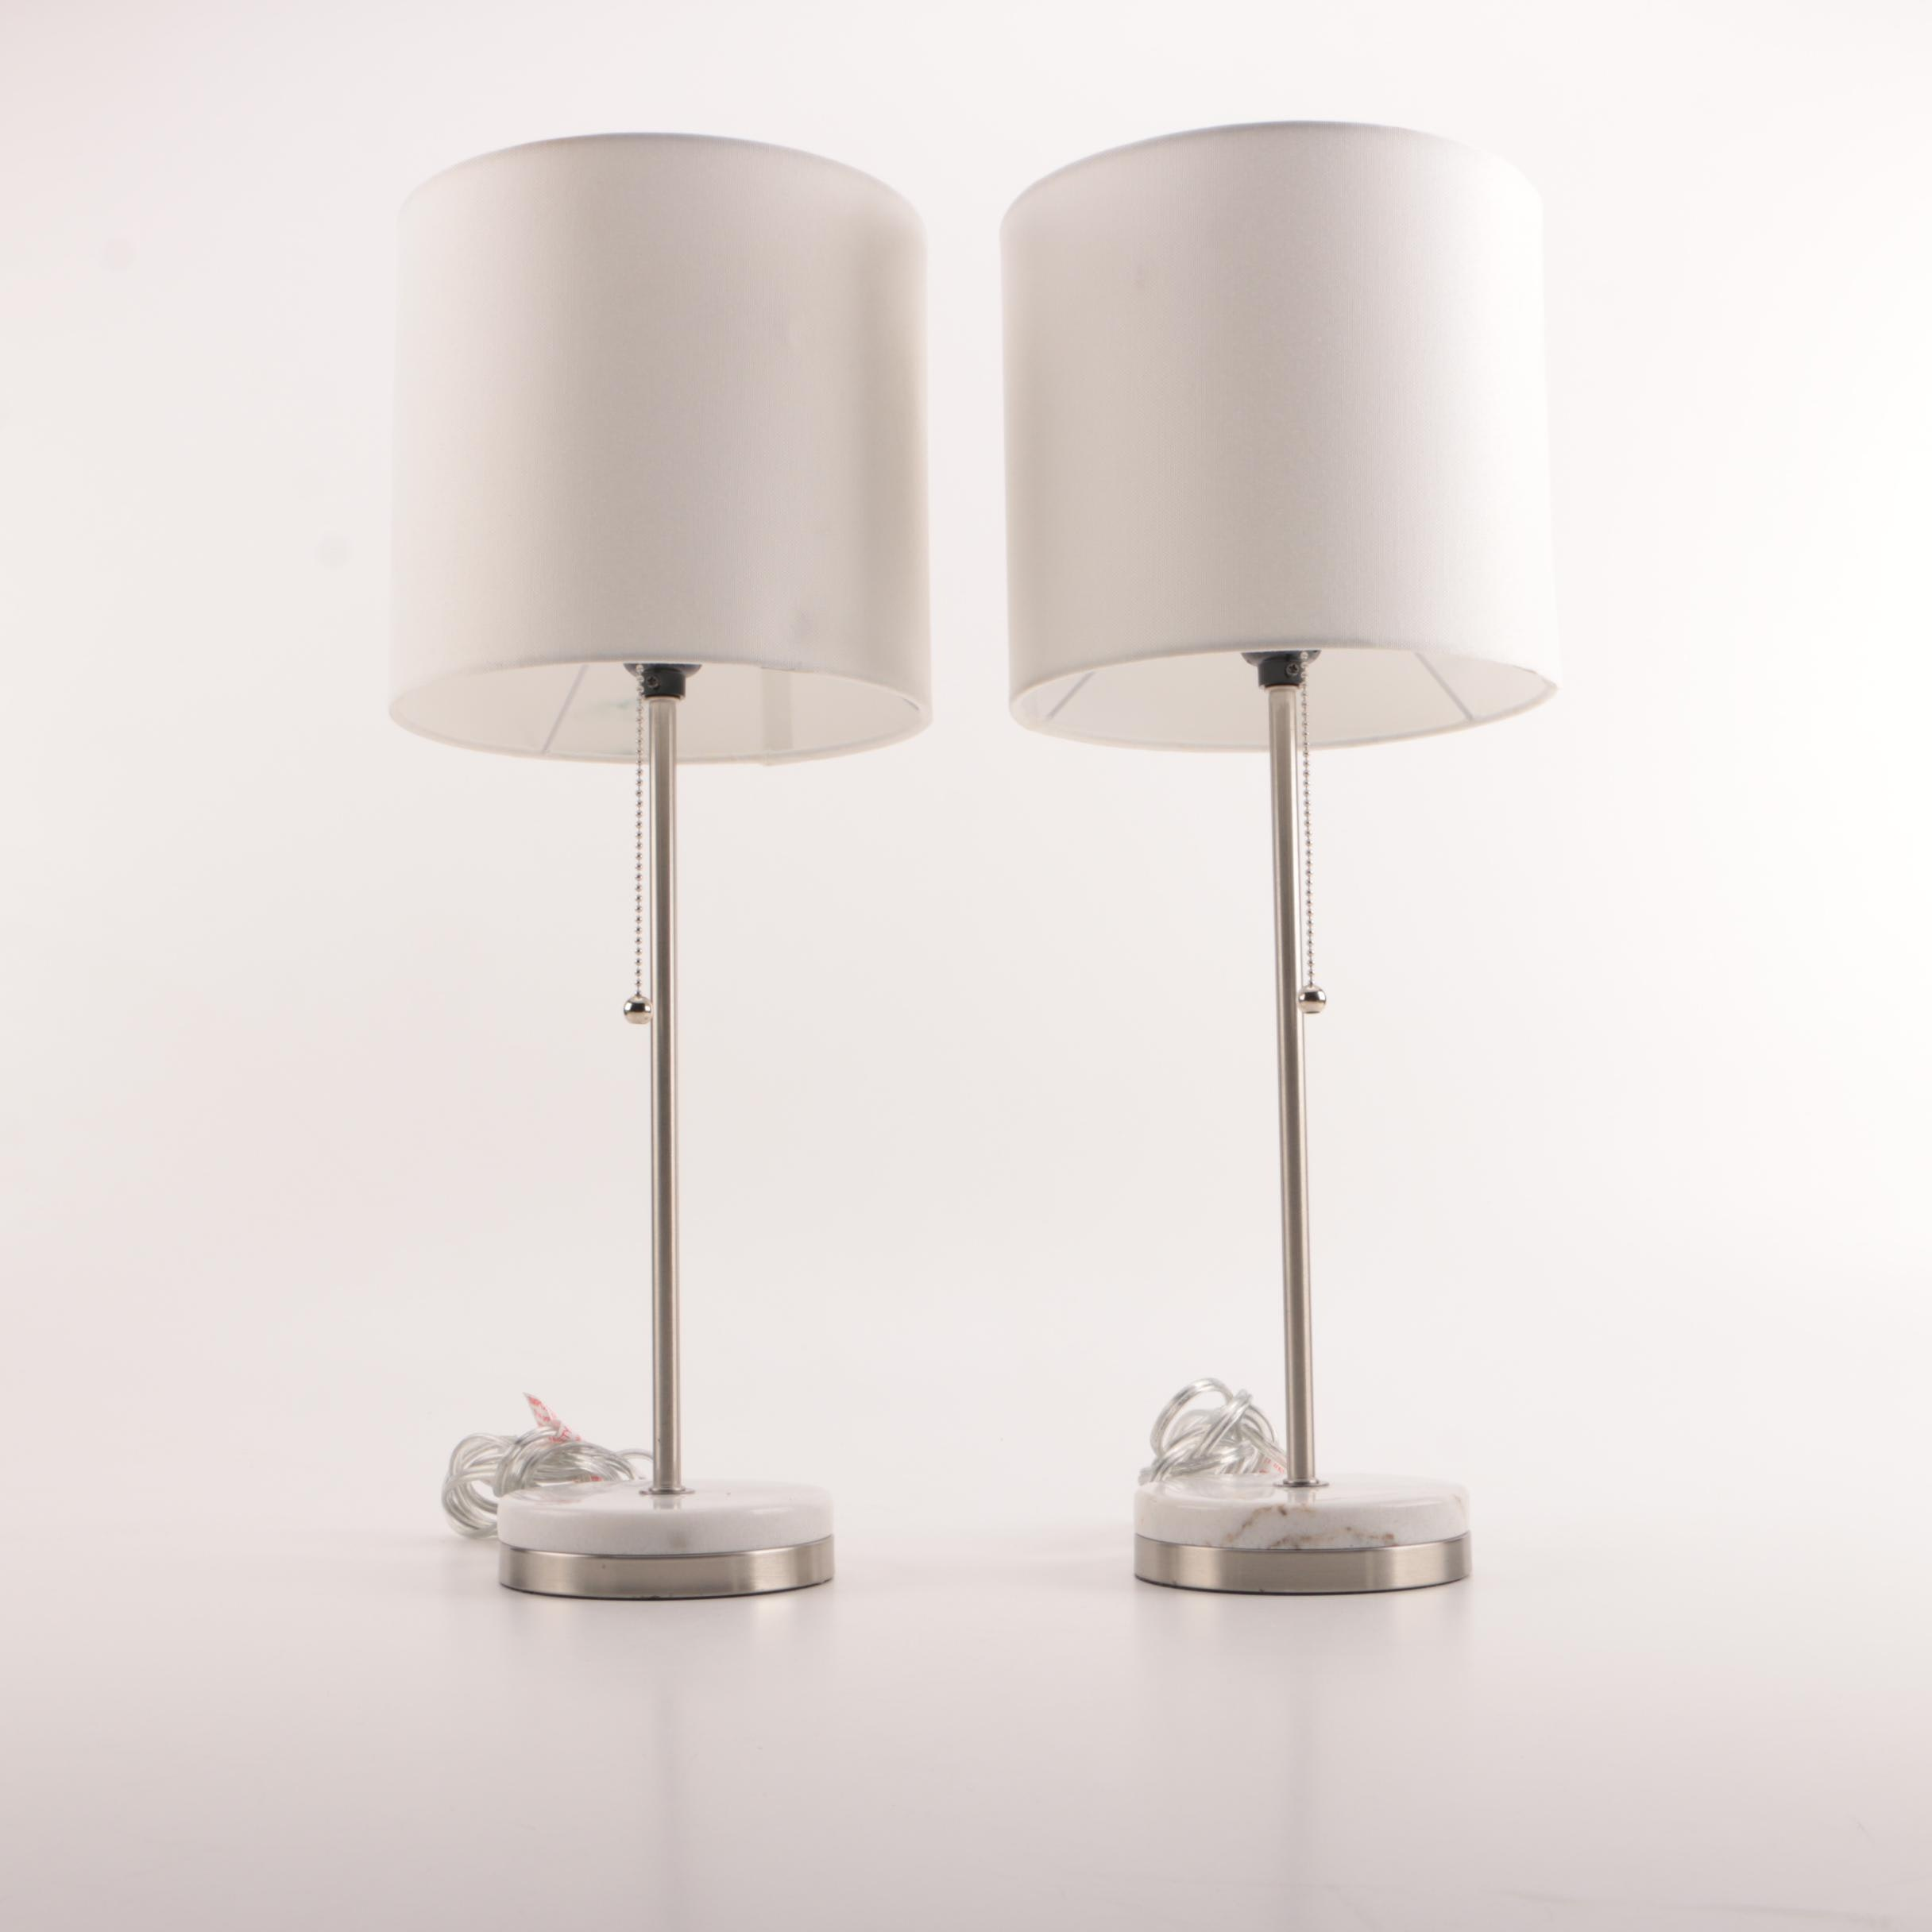 Modernist Table Lamps with Marble Bases